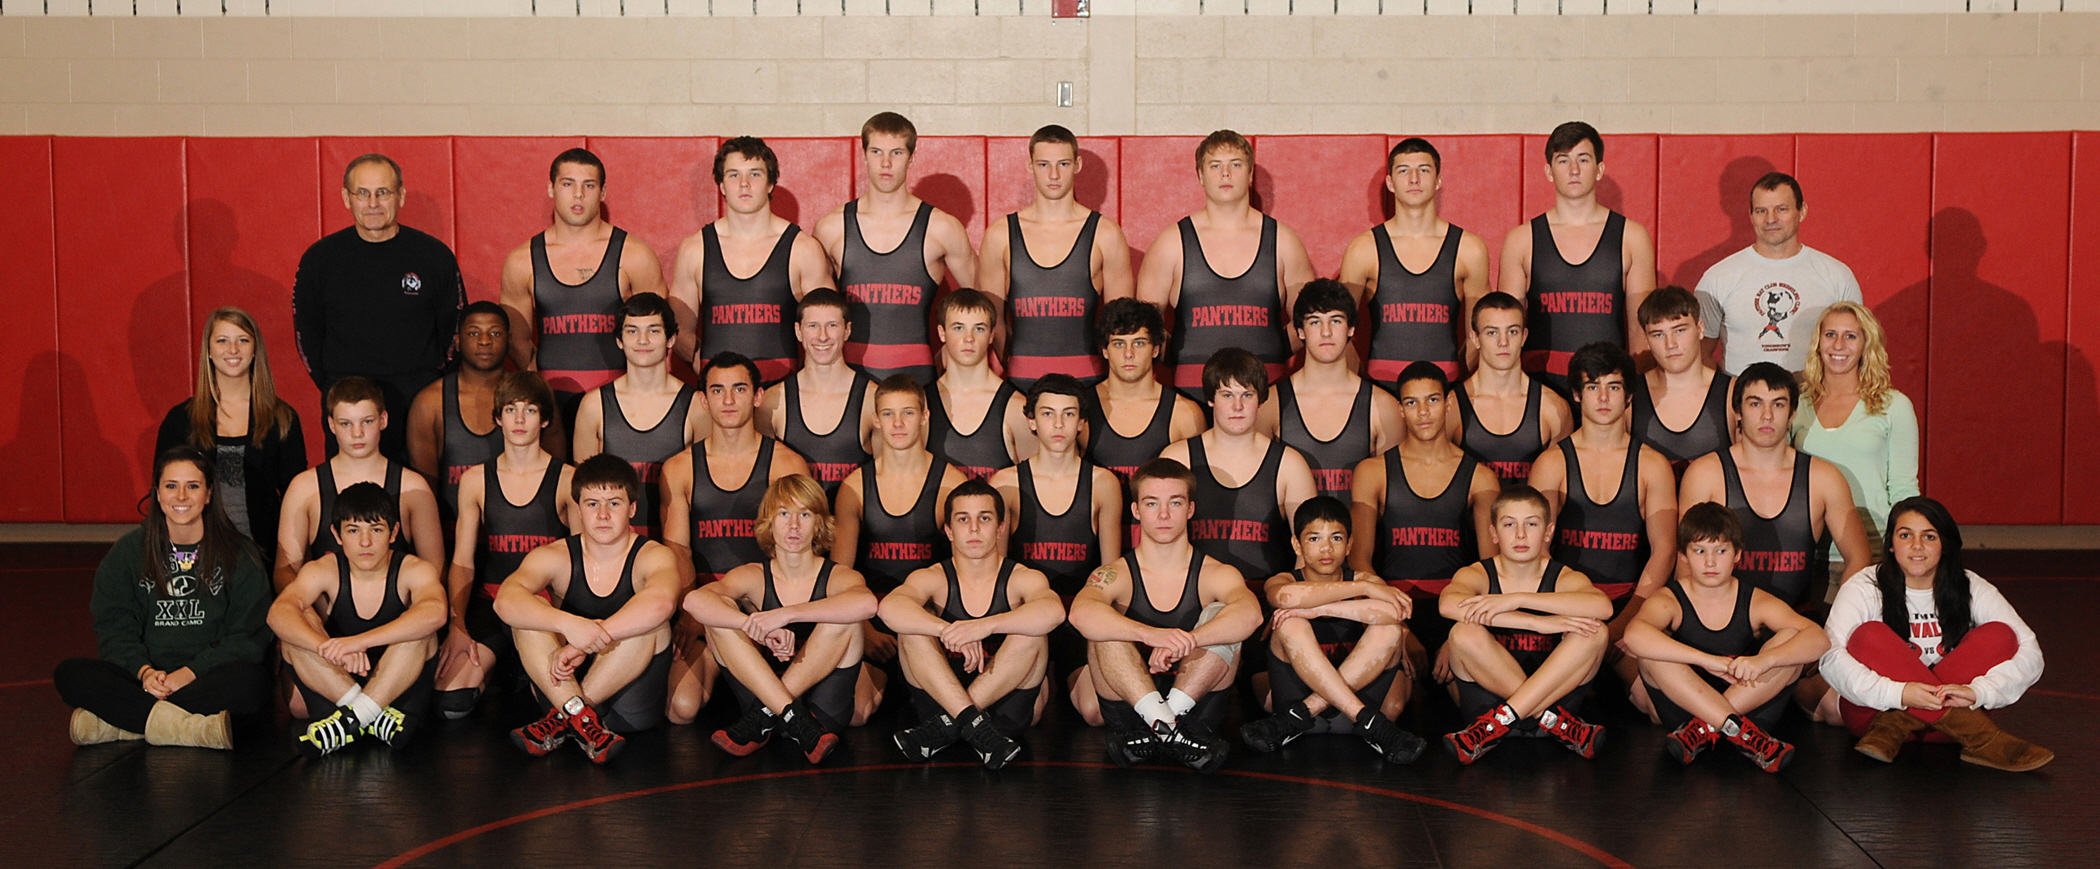 Schuylkill Valley Varsity Wrestling Team 2011 Season